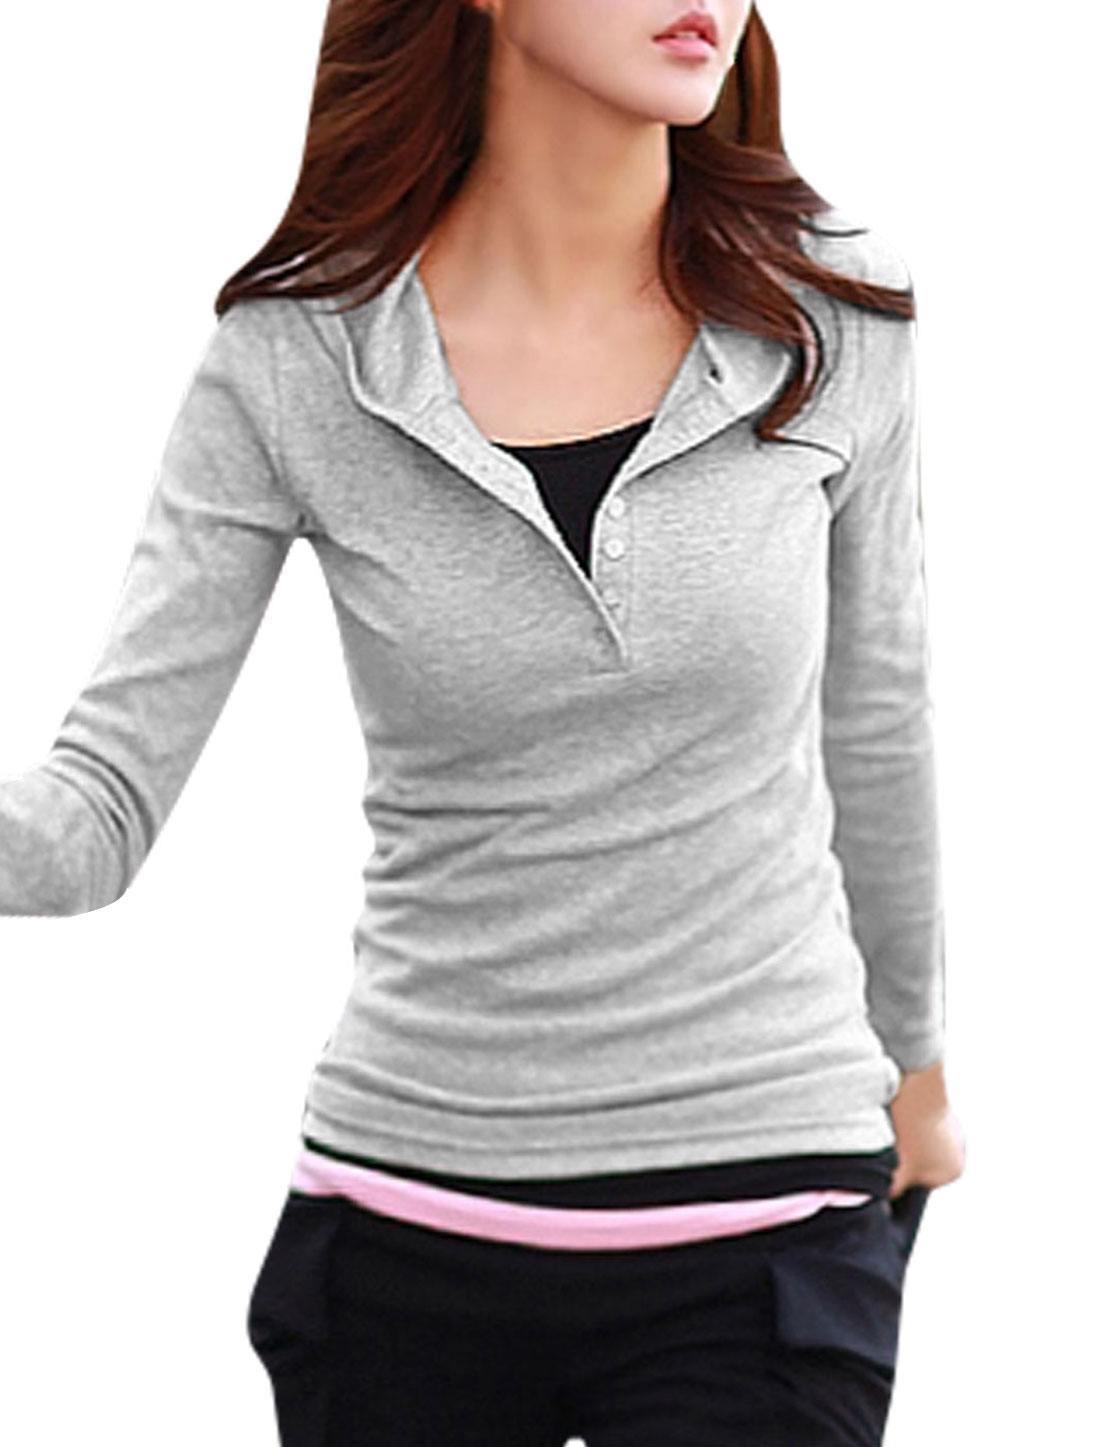 Button Closure Upper Slim Fit Light Gray Hooded Shirt for Woman M